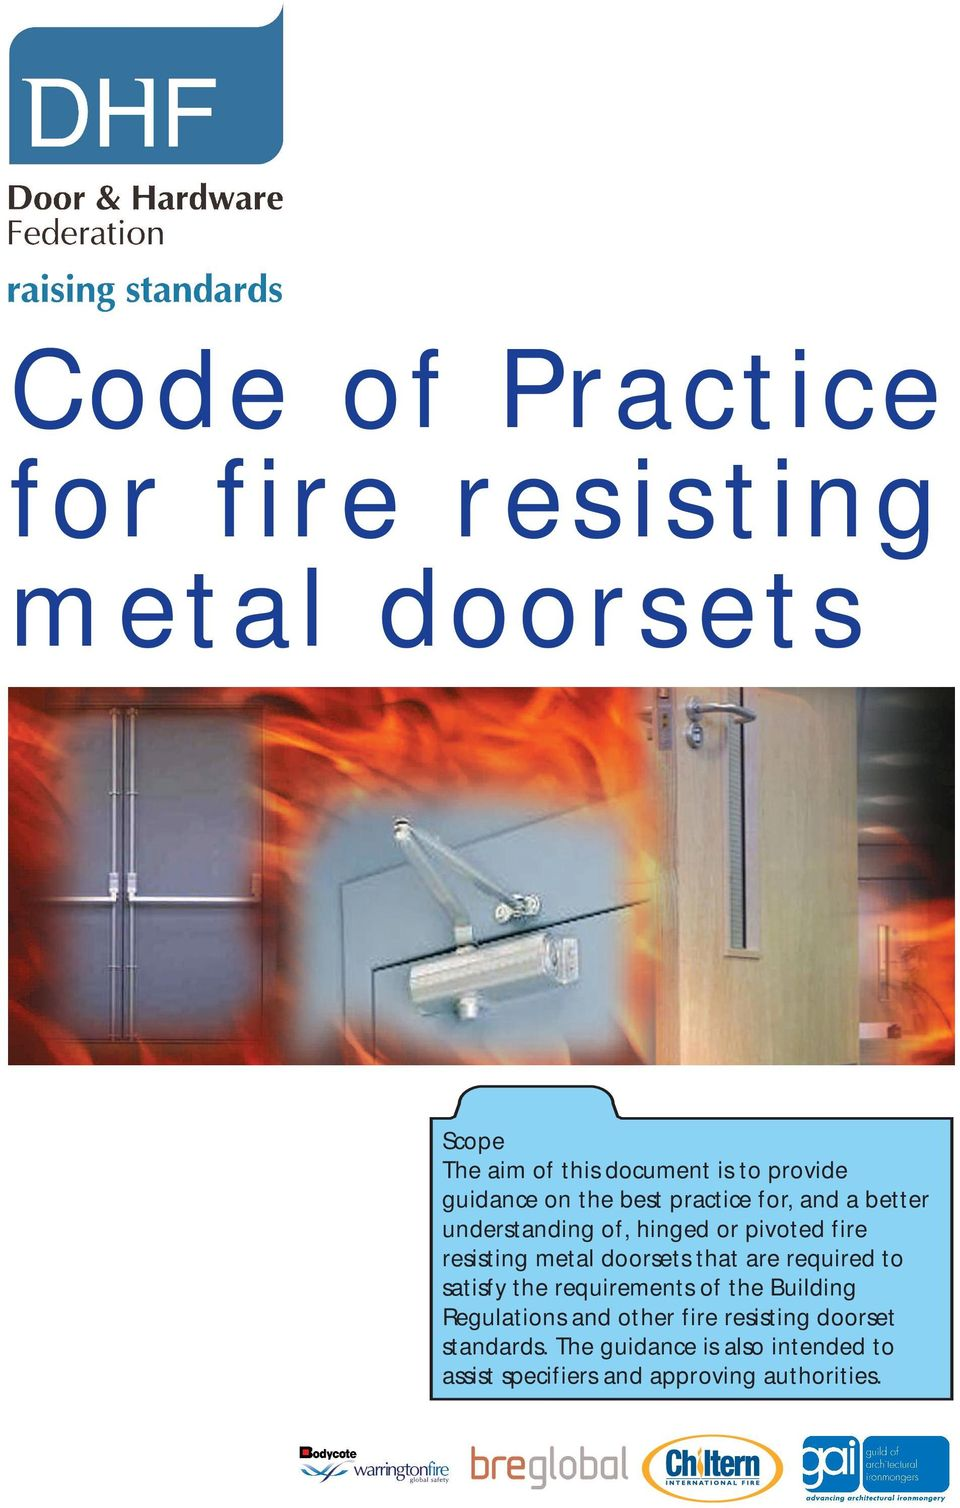 fire resisting doorset standards. The guidance is also intended to assist specifiers and approving authorities.